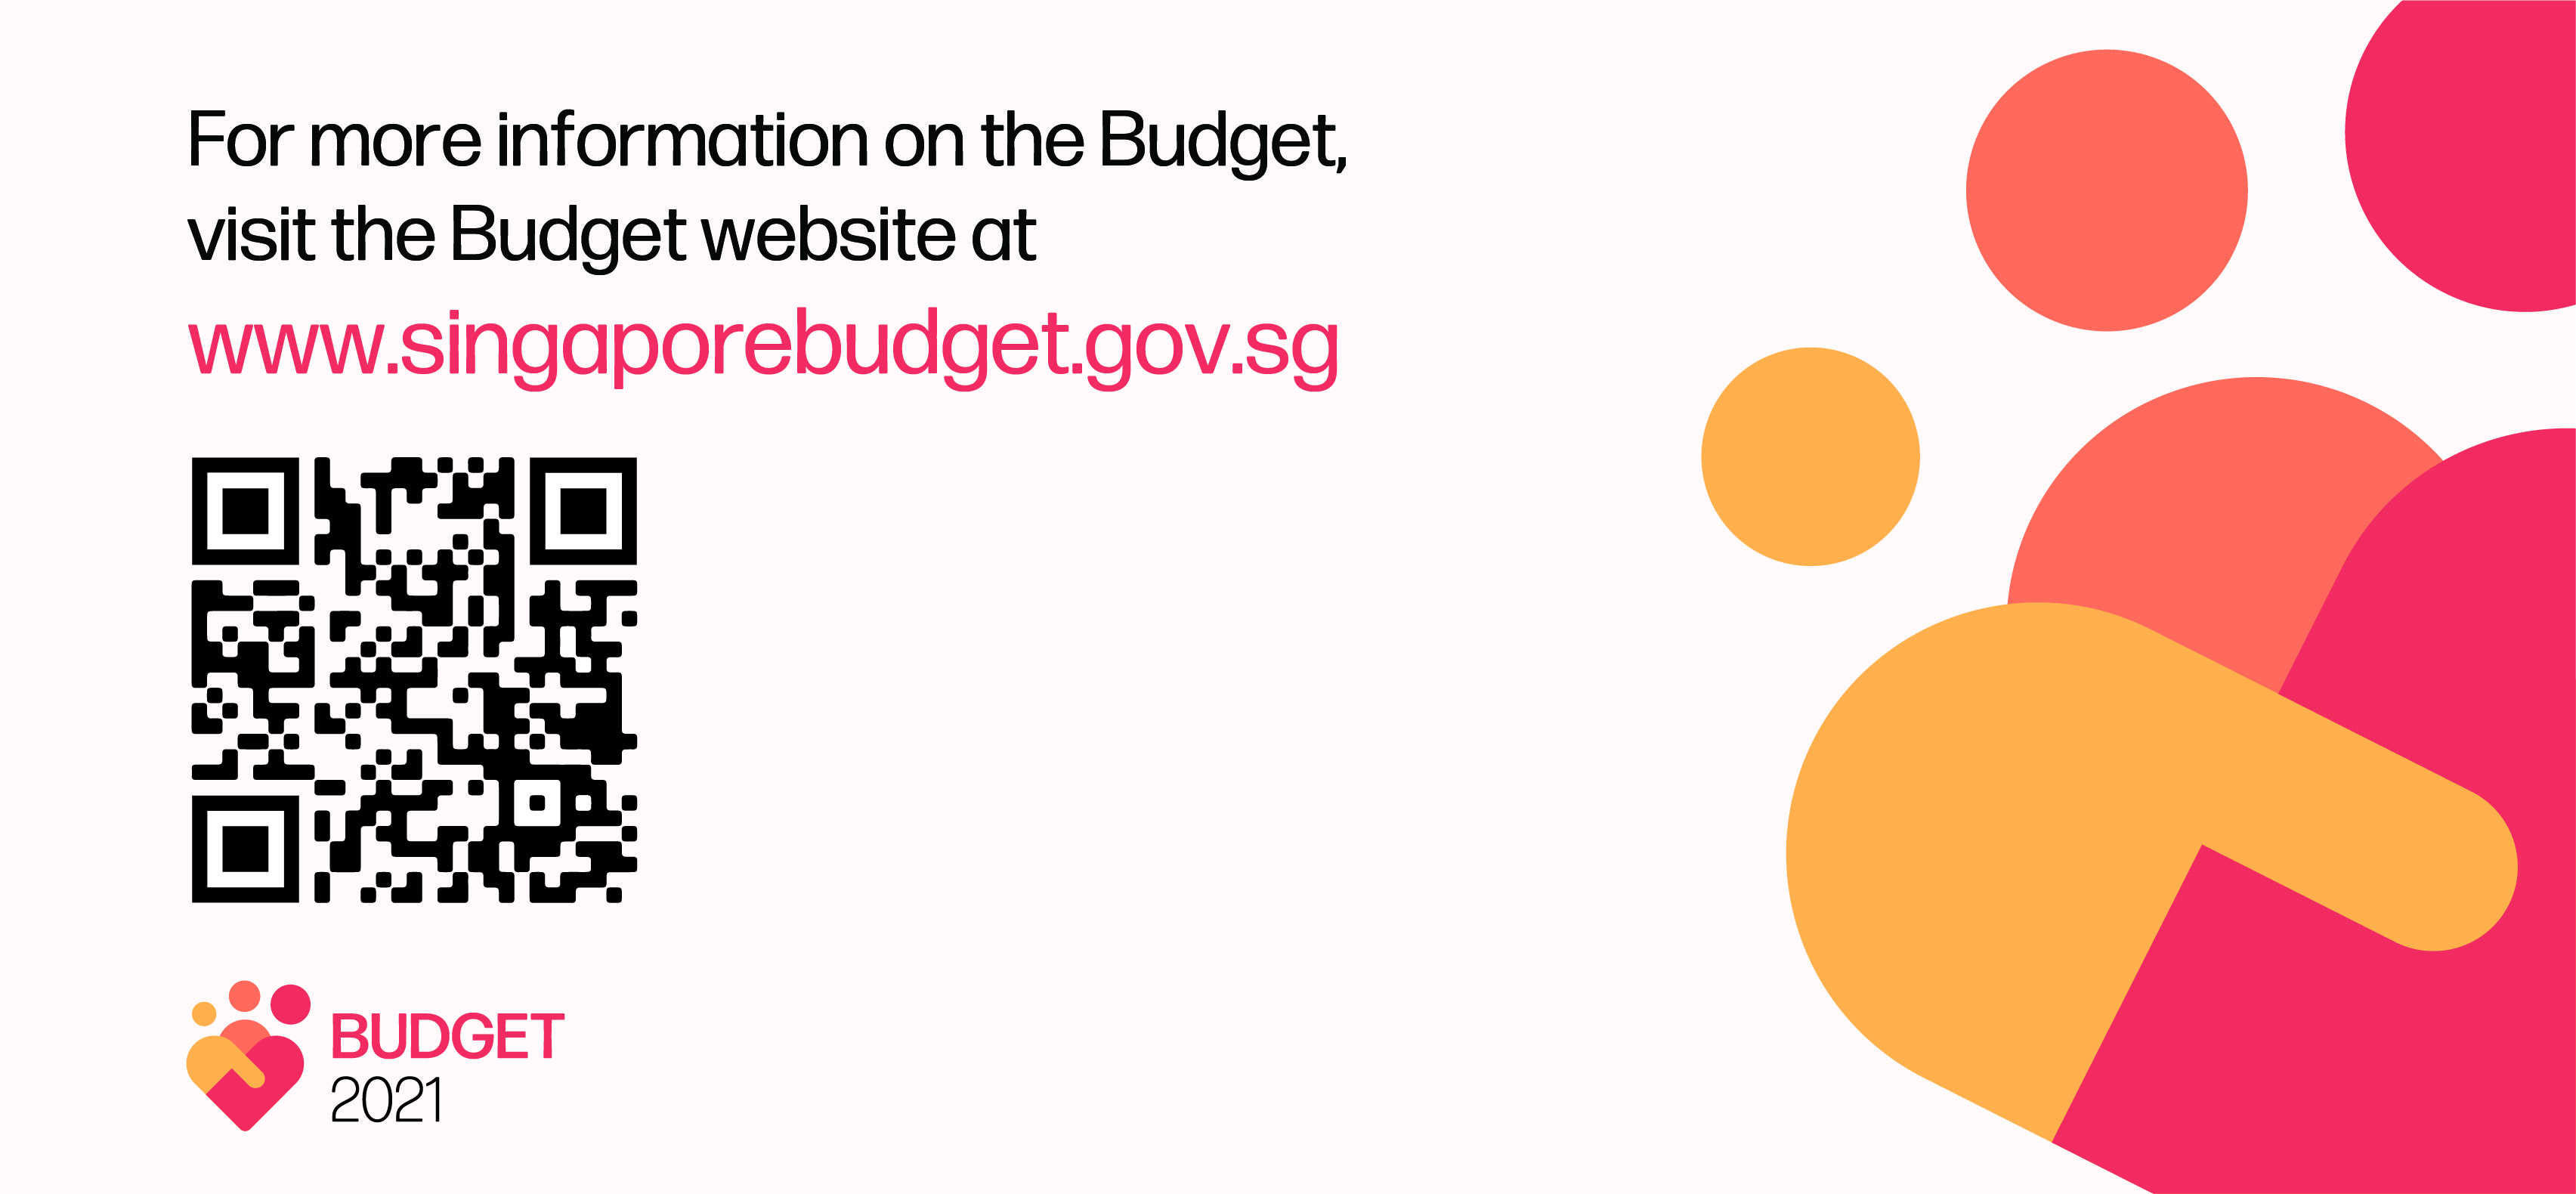 The Singapore Budget is a strategic financial plan to address the challenges facing us, and to build our future Singapore together. Click to find out more about our national Budget process.